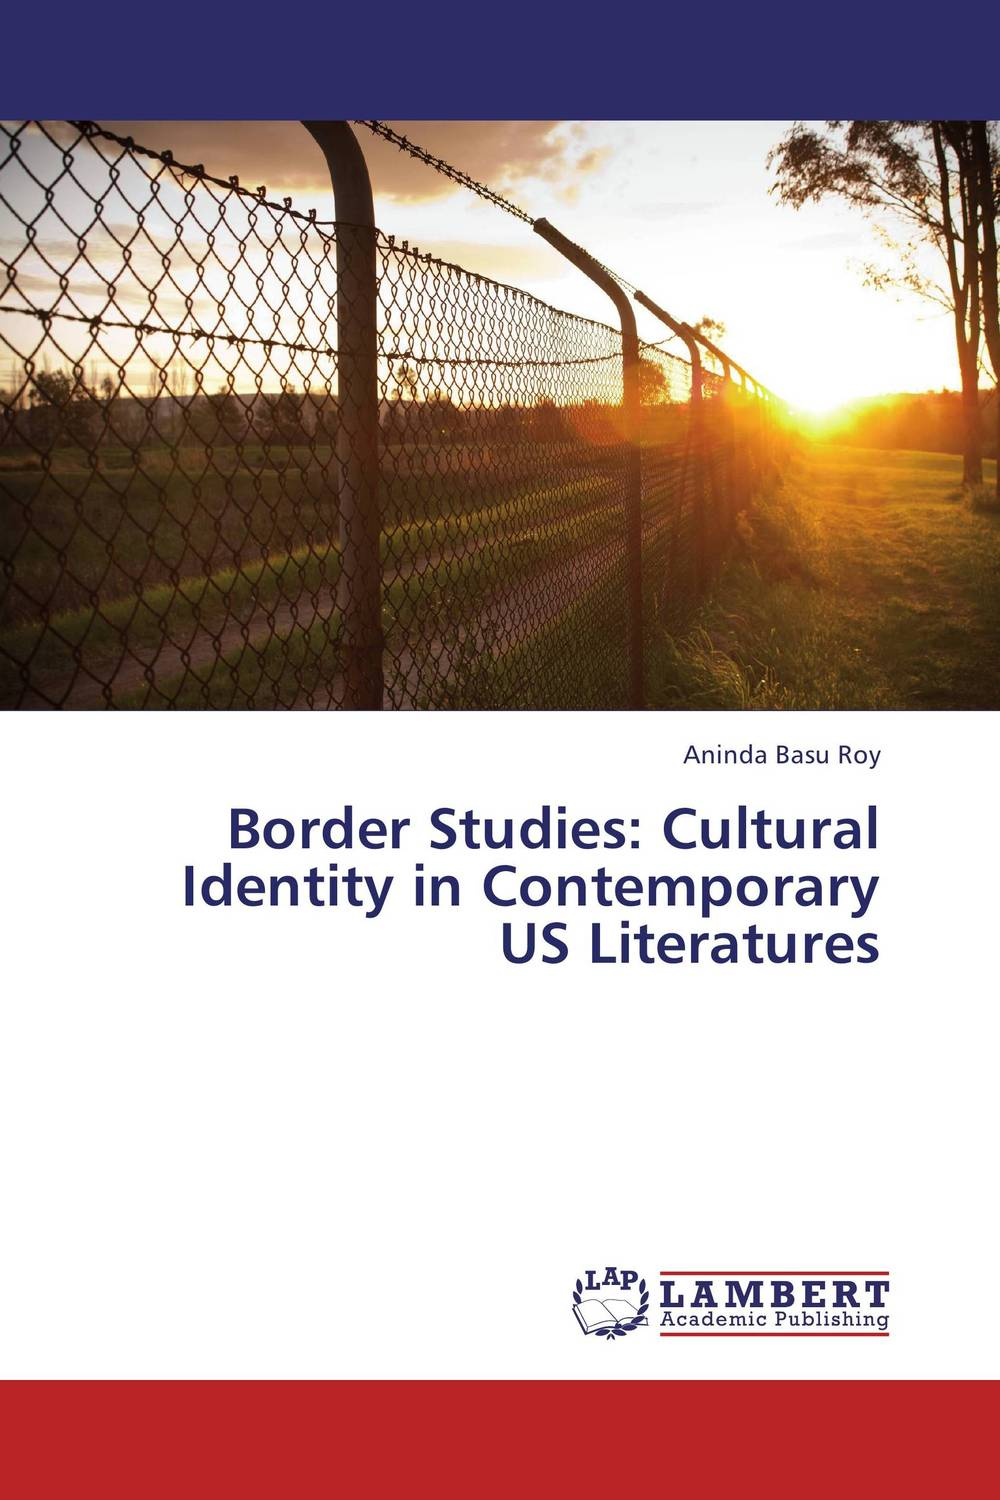 Border Studies: Cultural Identity in Contemporary US Literatures